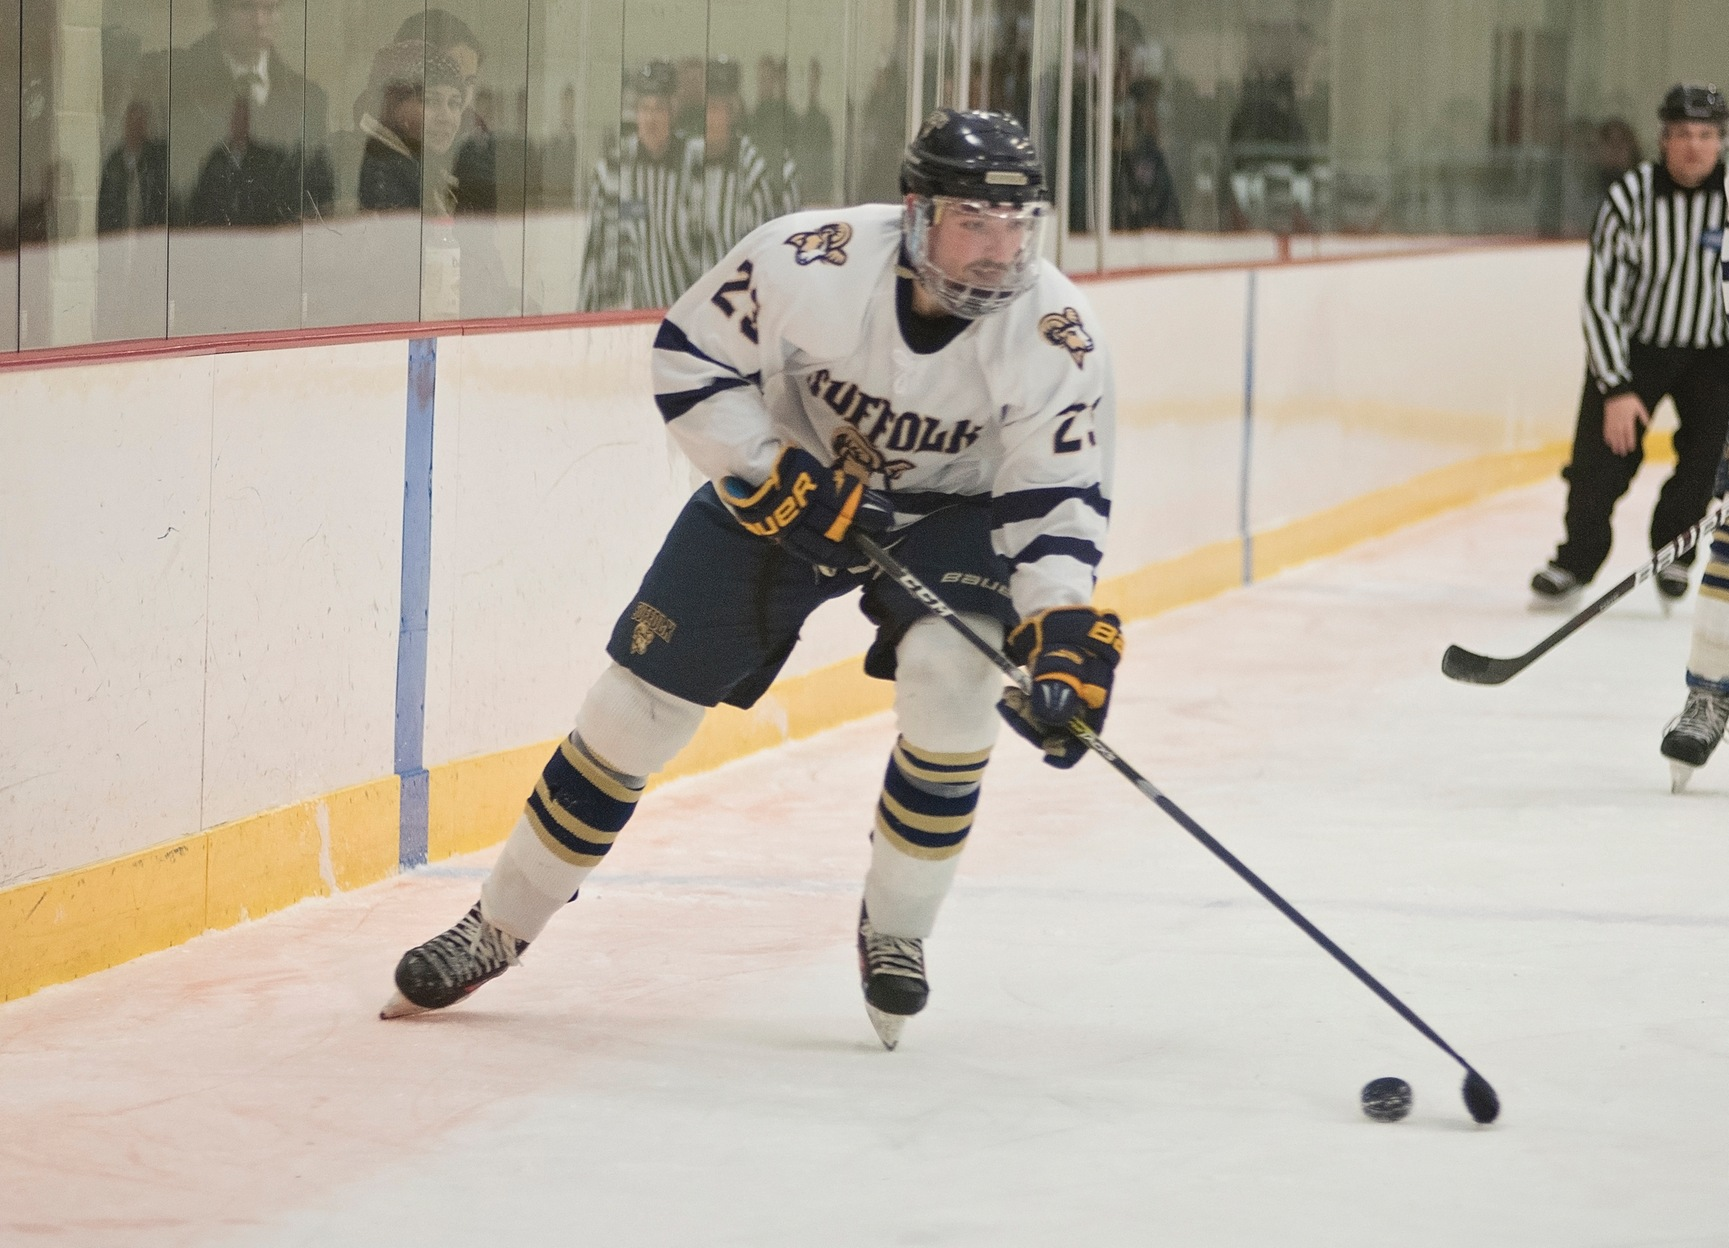 Miller's Goal Lifts Men's Hockey Past Wentworth, 1-0